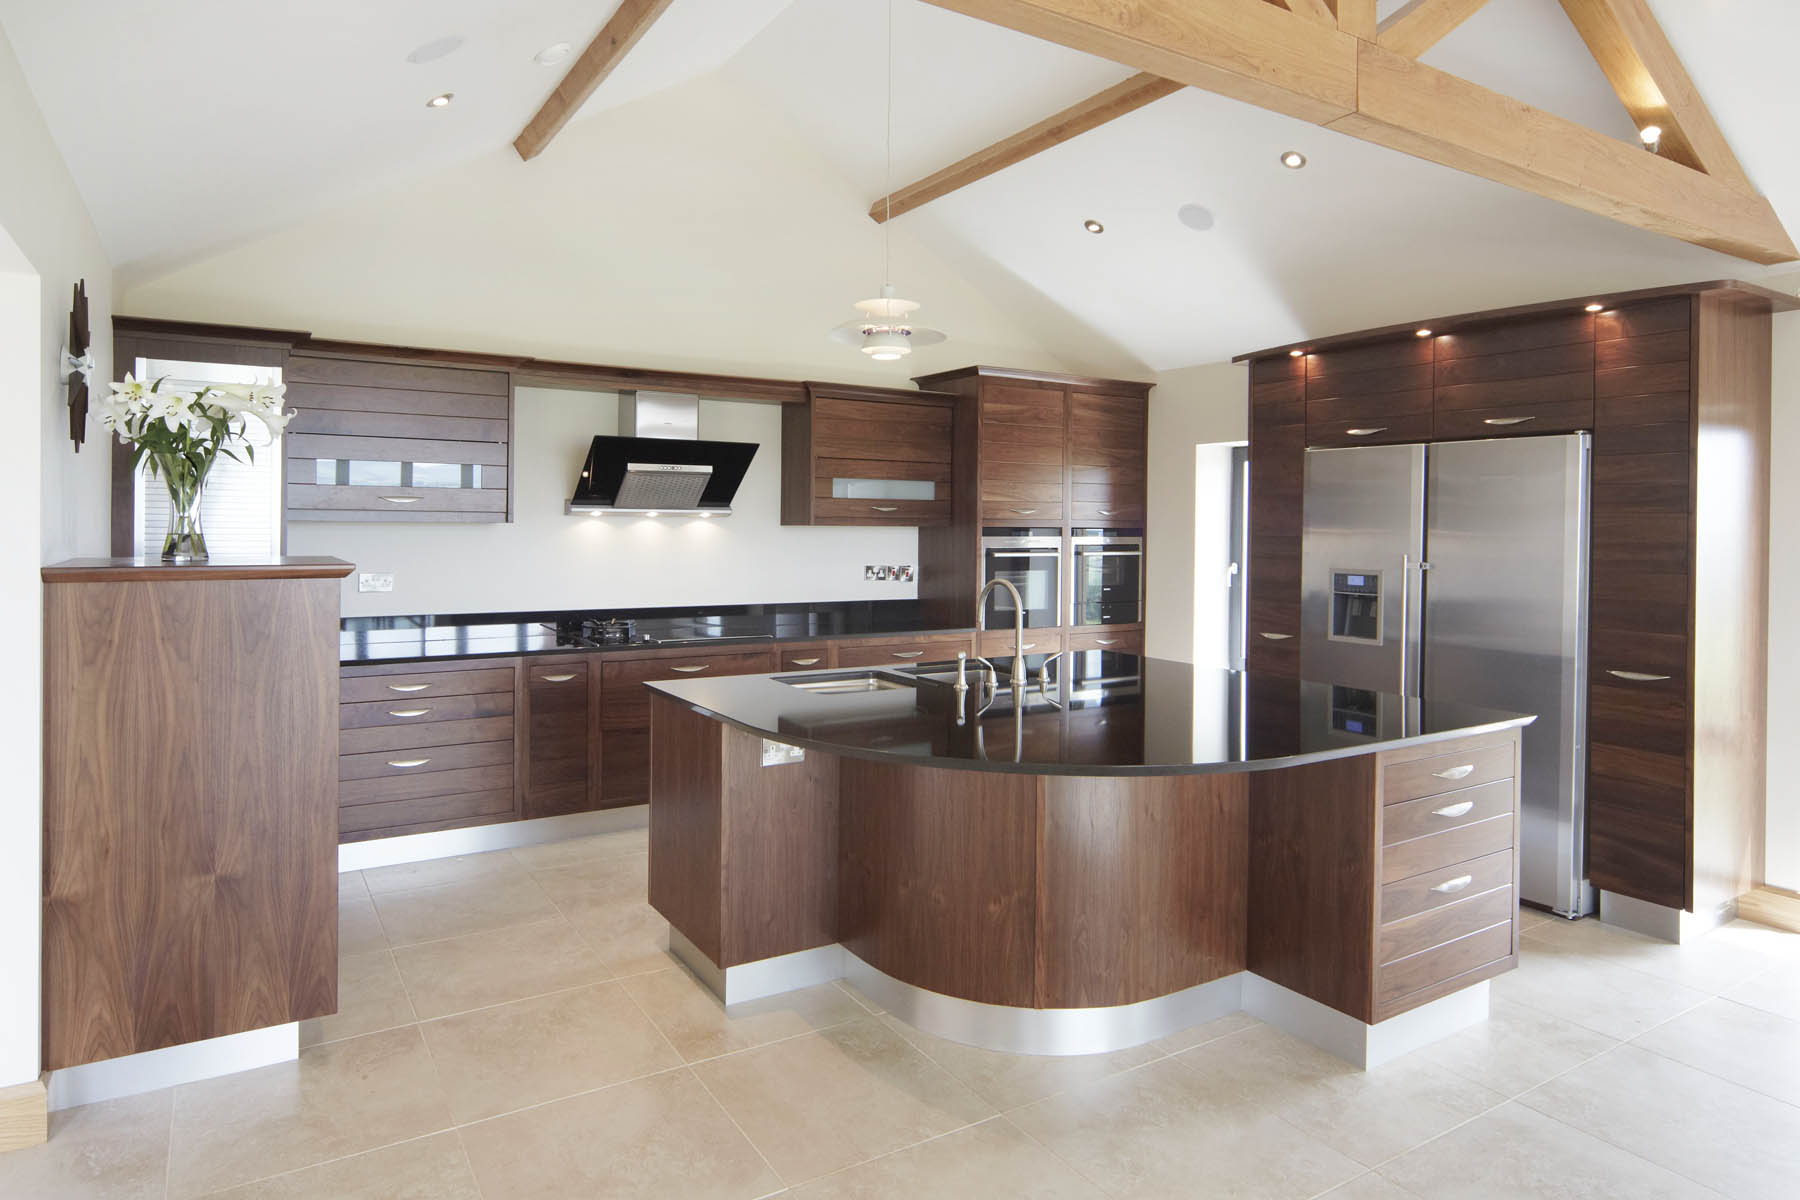 Kitchens california remodeling inc for Best kitchen renovation ideas